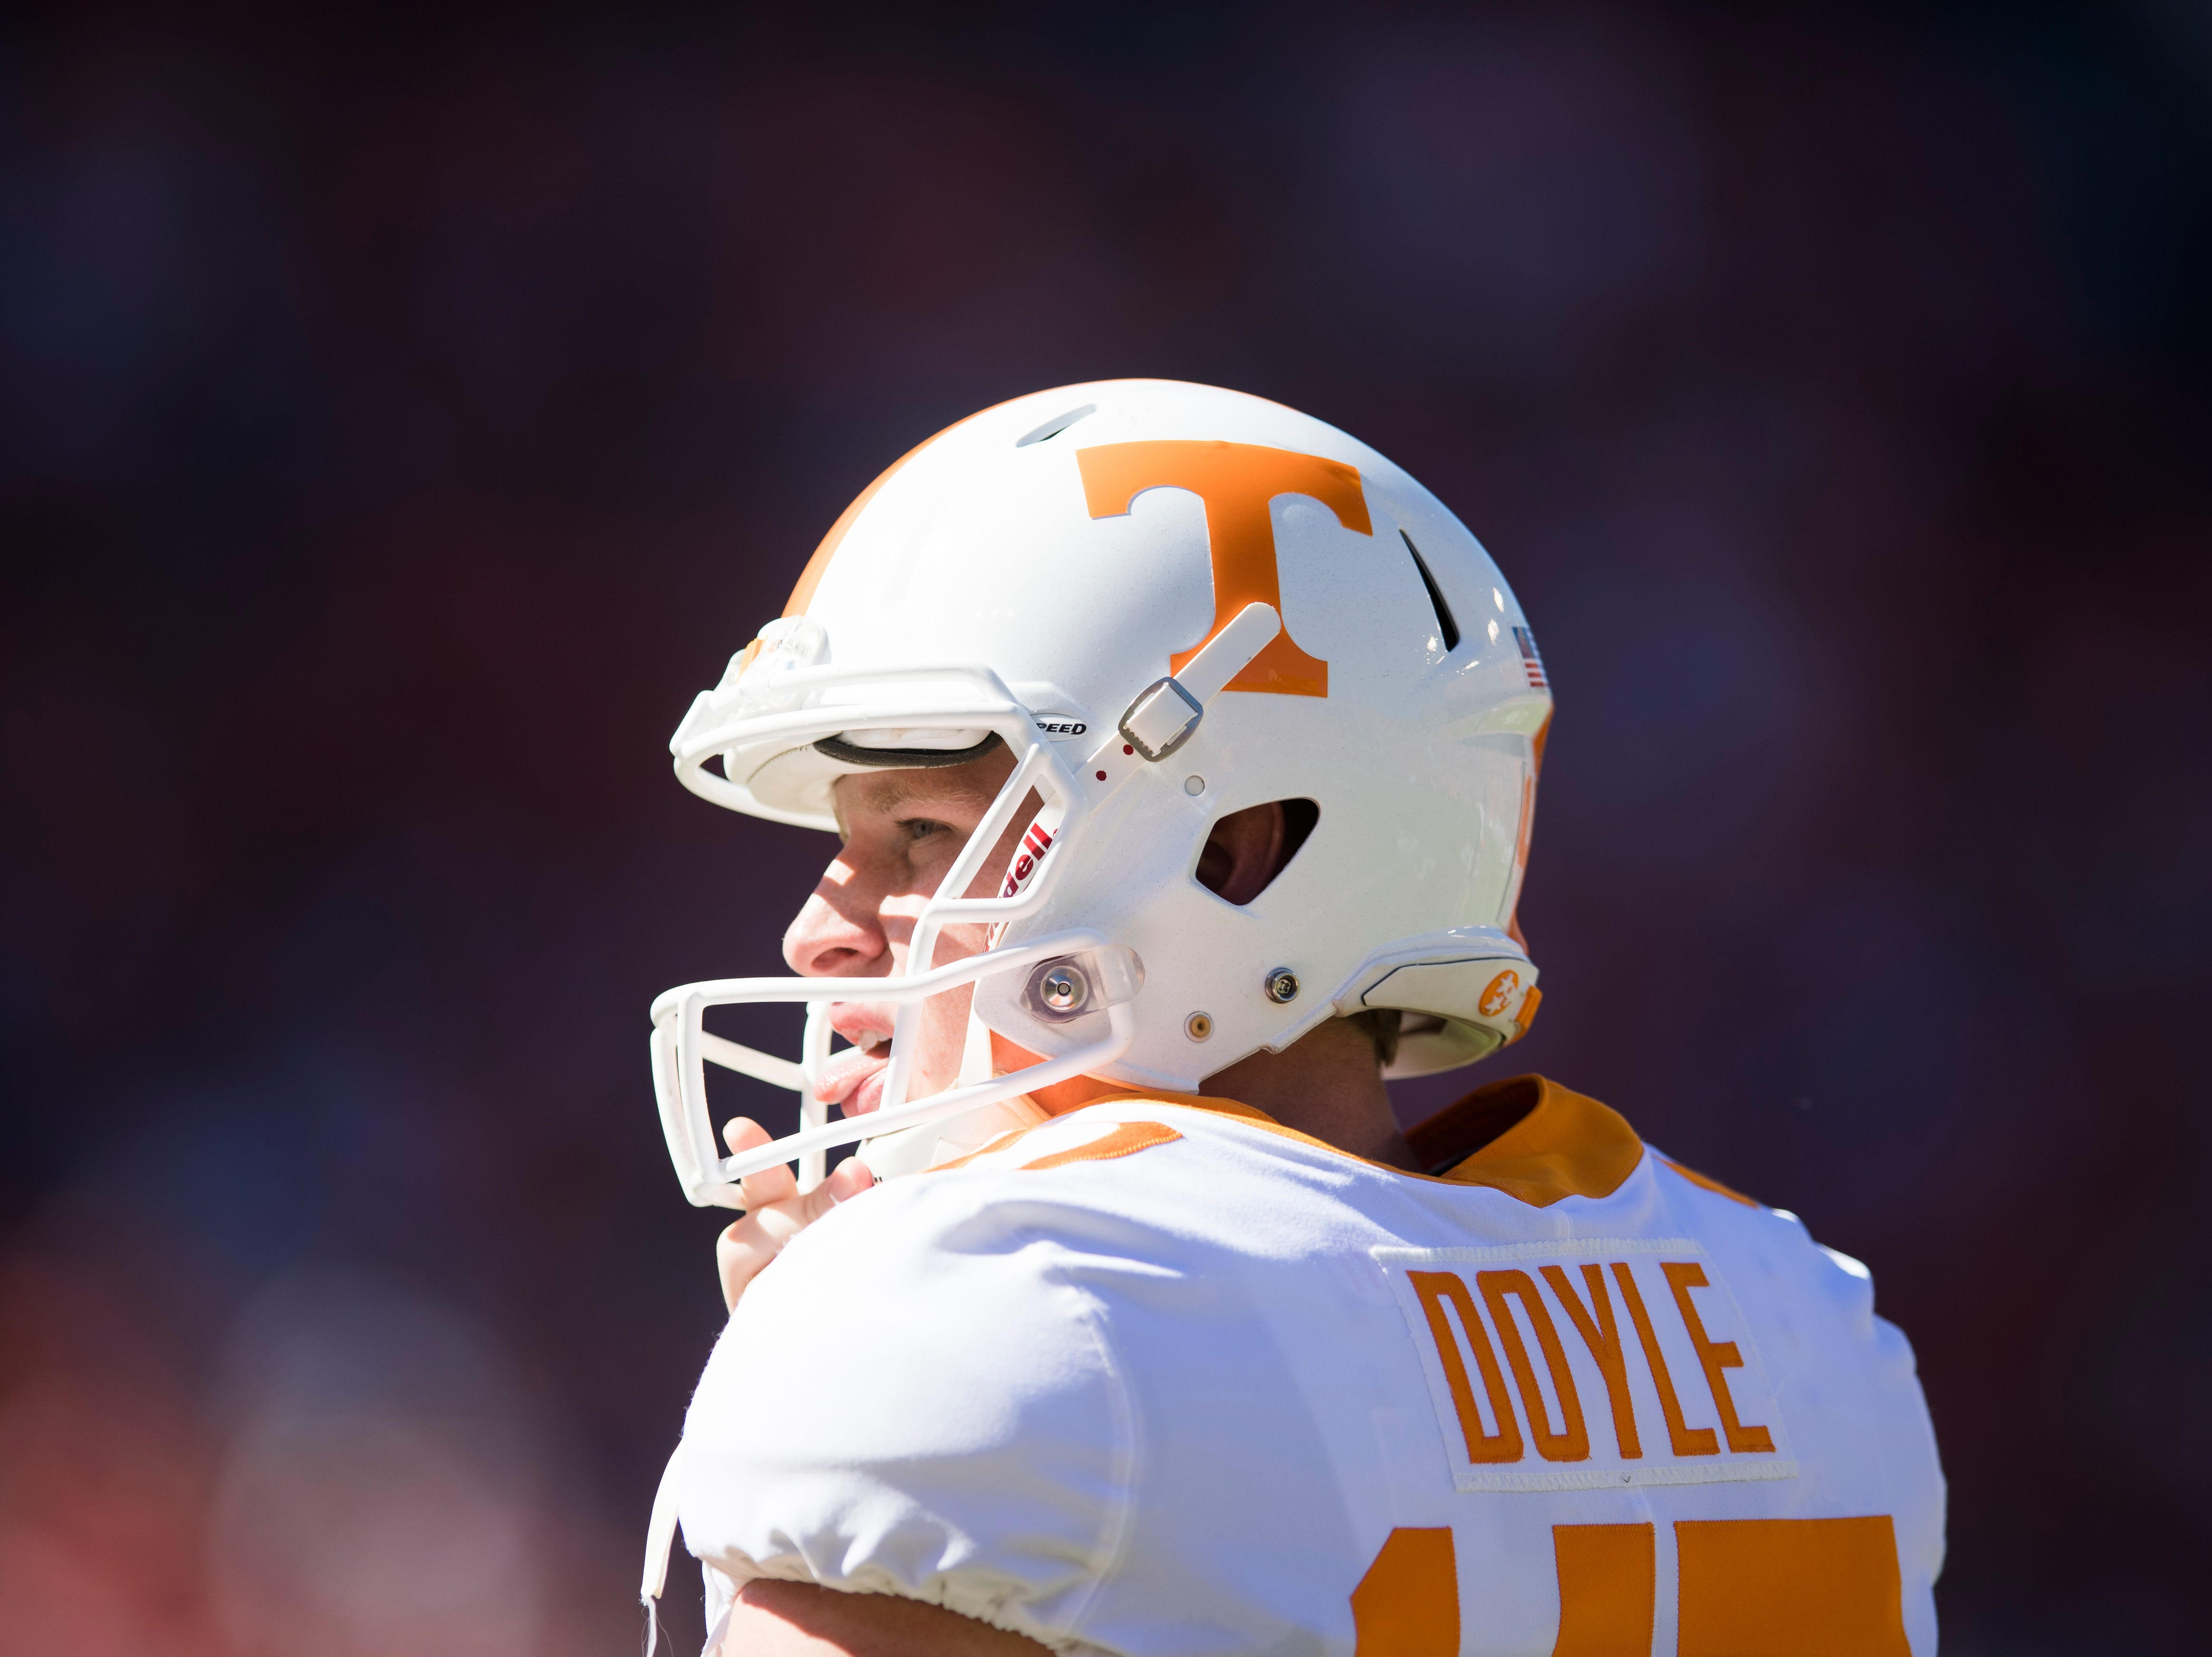 Tennessee punter Joe Doyle (47) looks on during a game between Tennessee and Auburn at Jordan-Hare Stadium in Auburn, Alabama on Saturday, October 13, 2018.